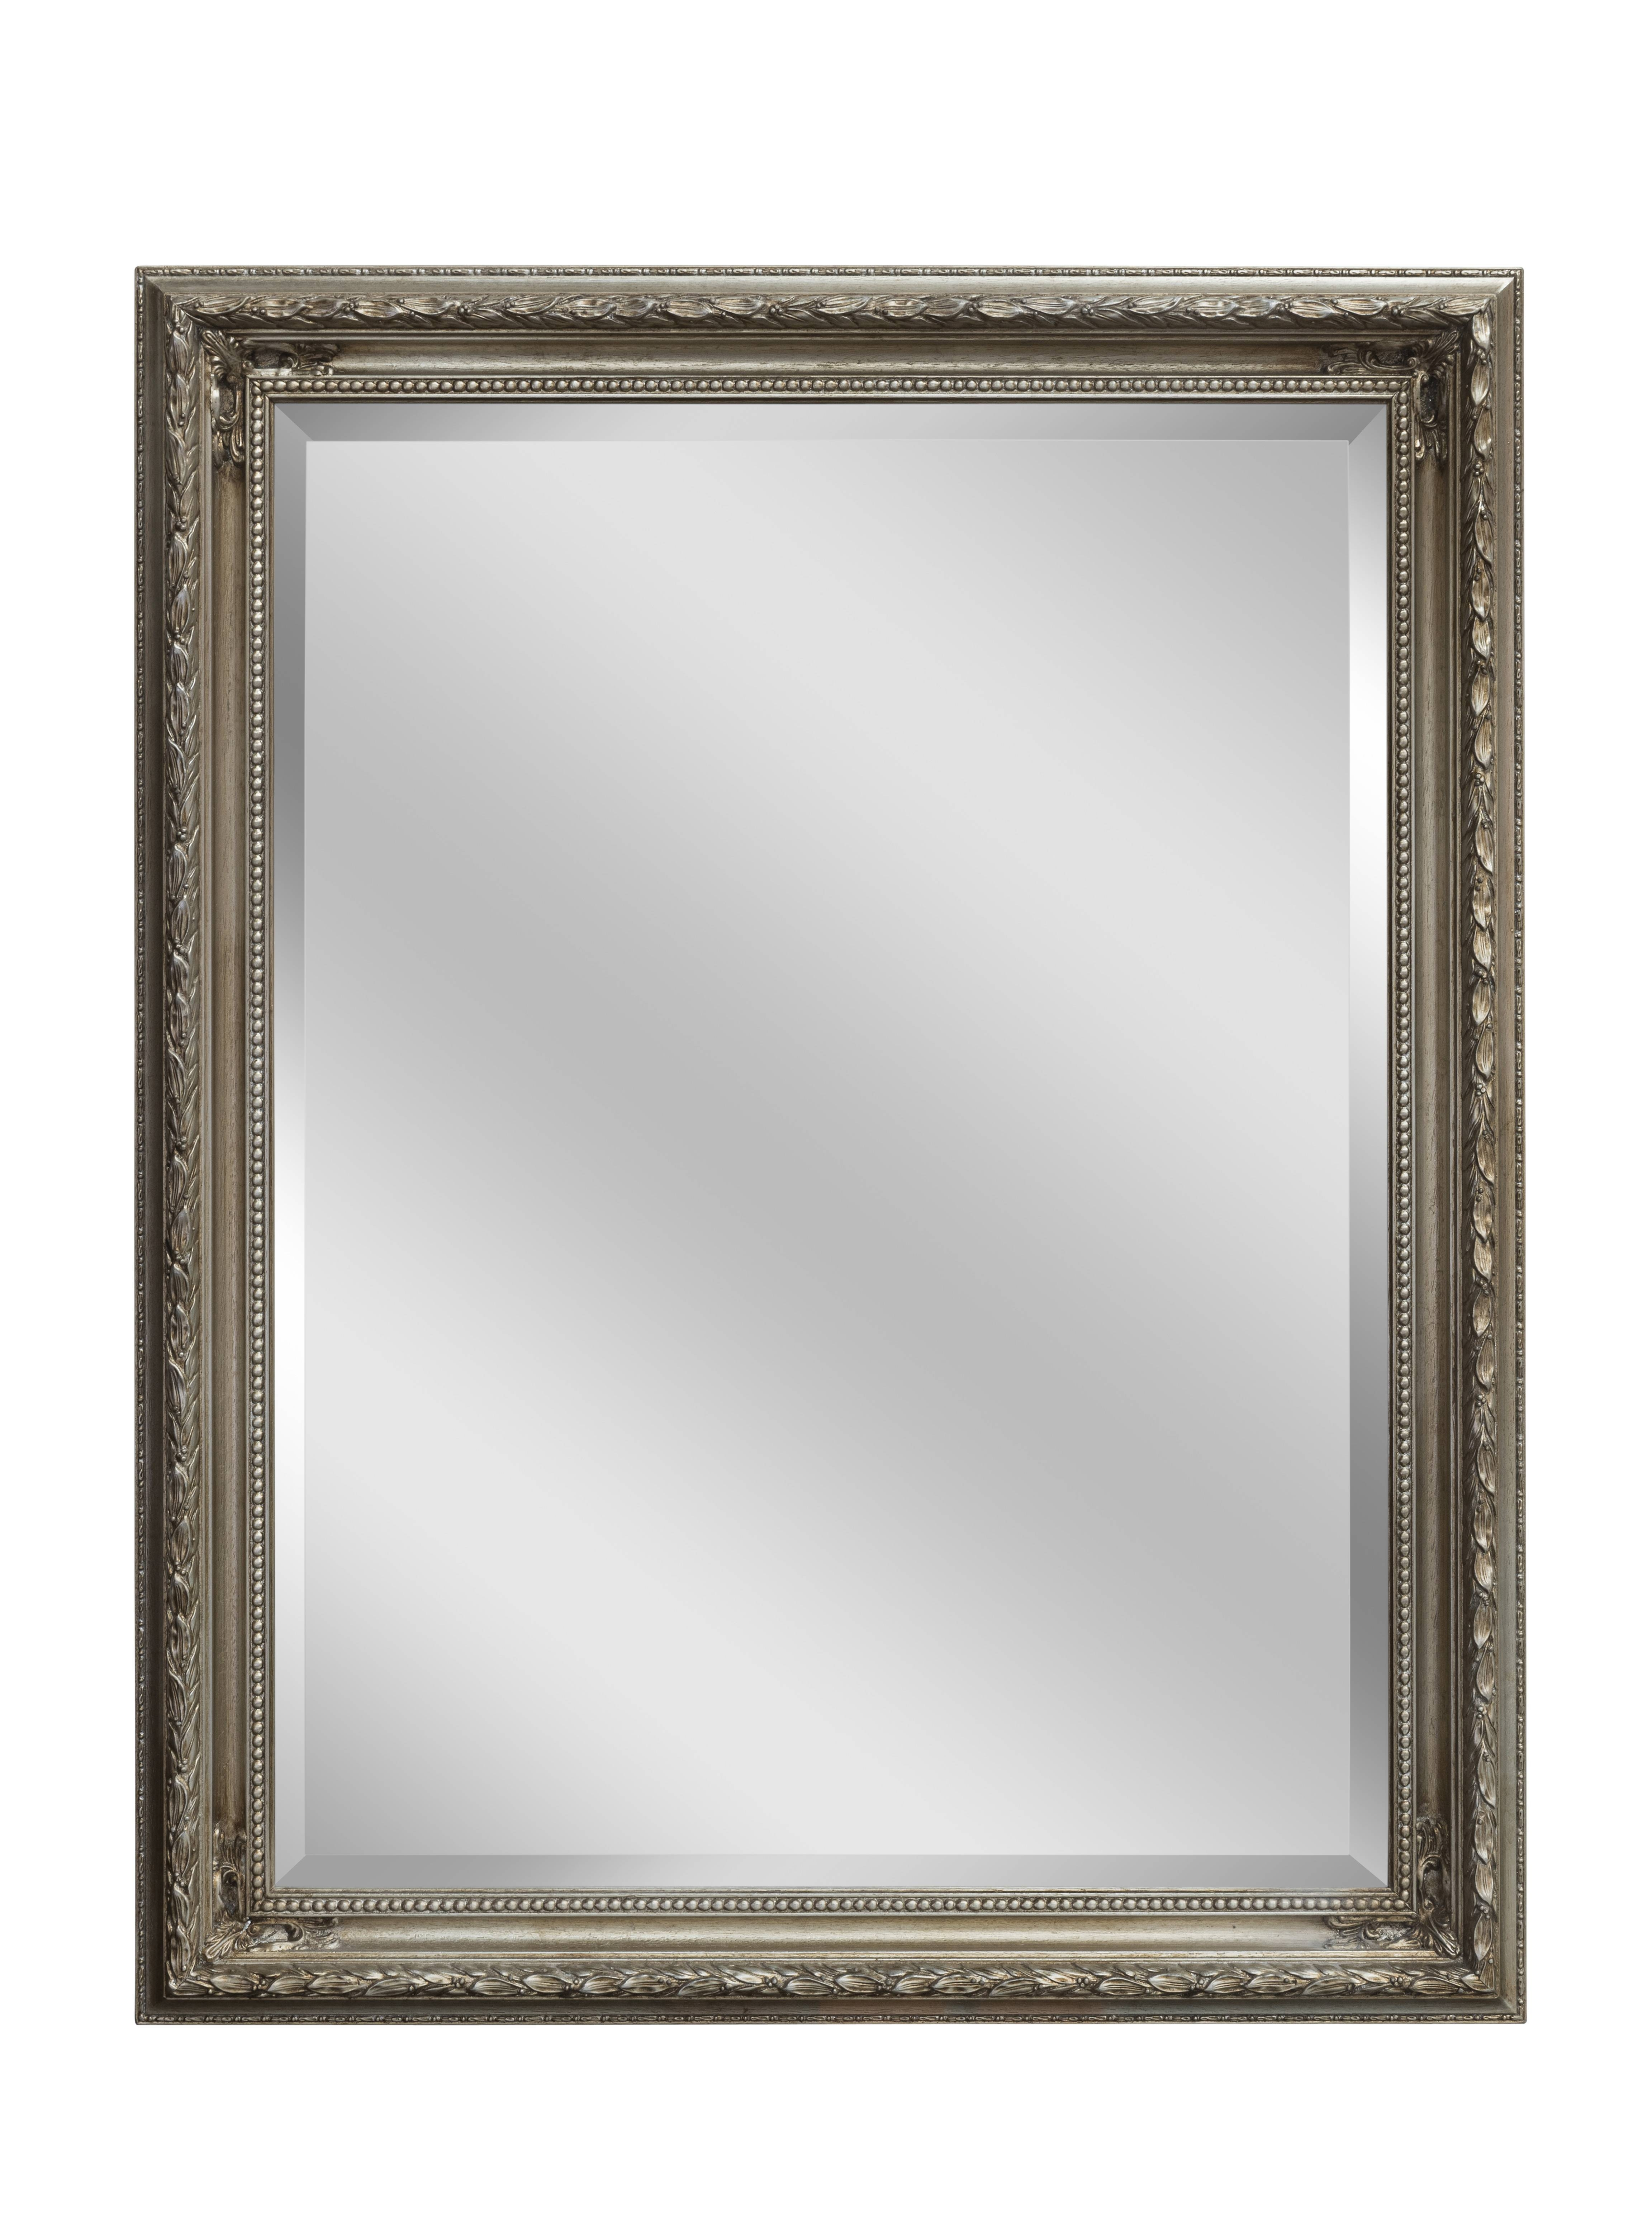 Silver Baroque Mirror | Large Mirrors For Sale - Panfili Mirrors with regard to Silver Baroque Mirrors (Image 14 of 15)